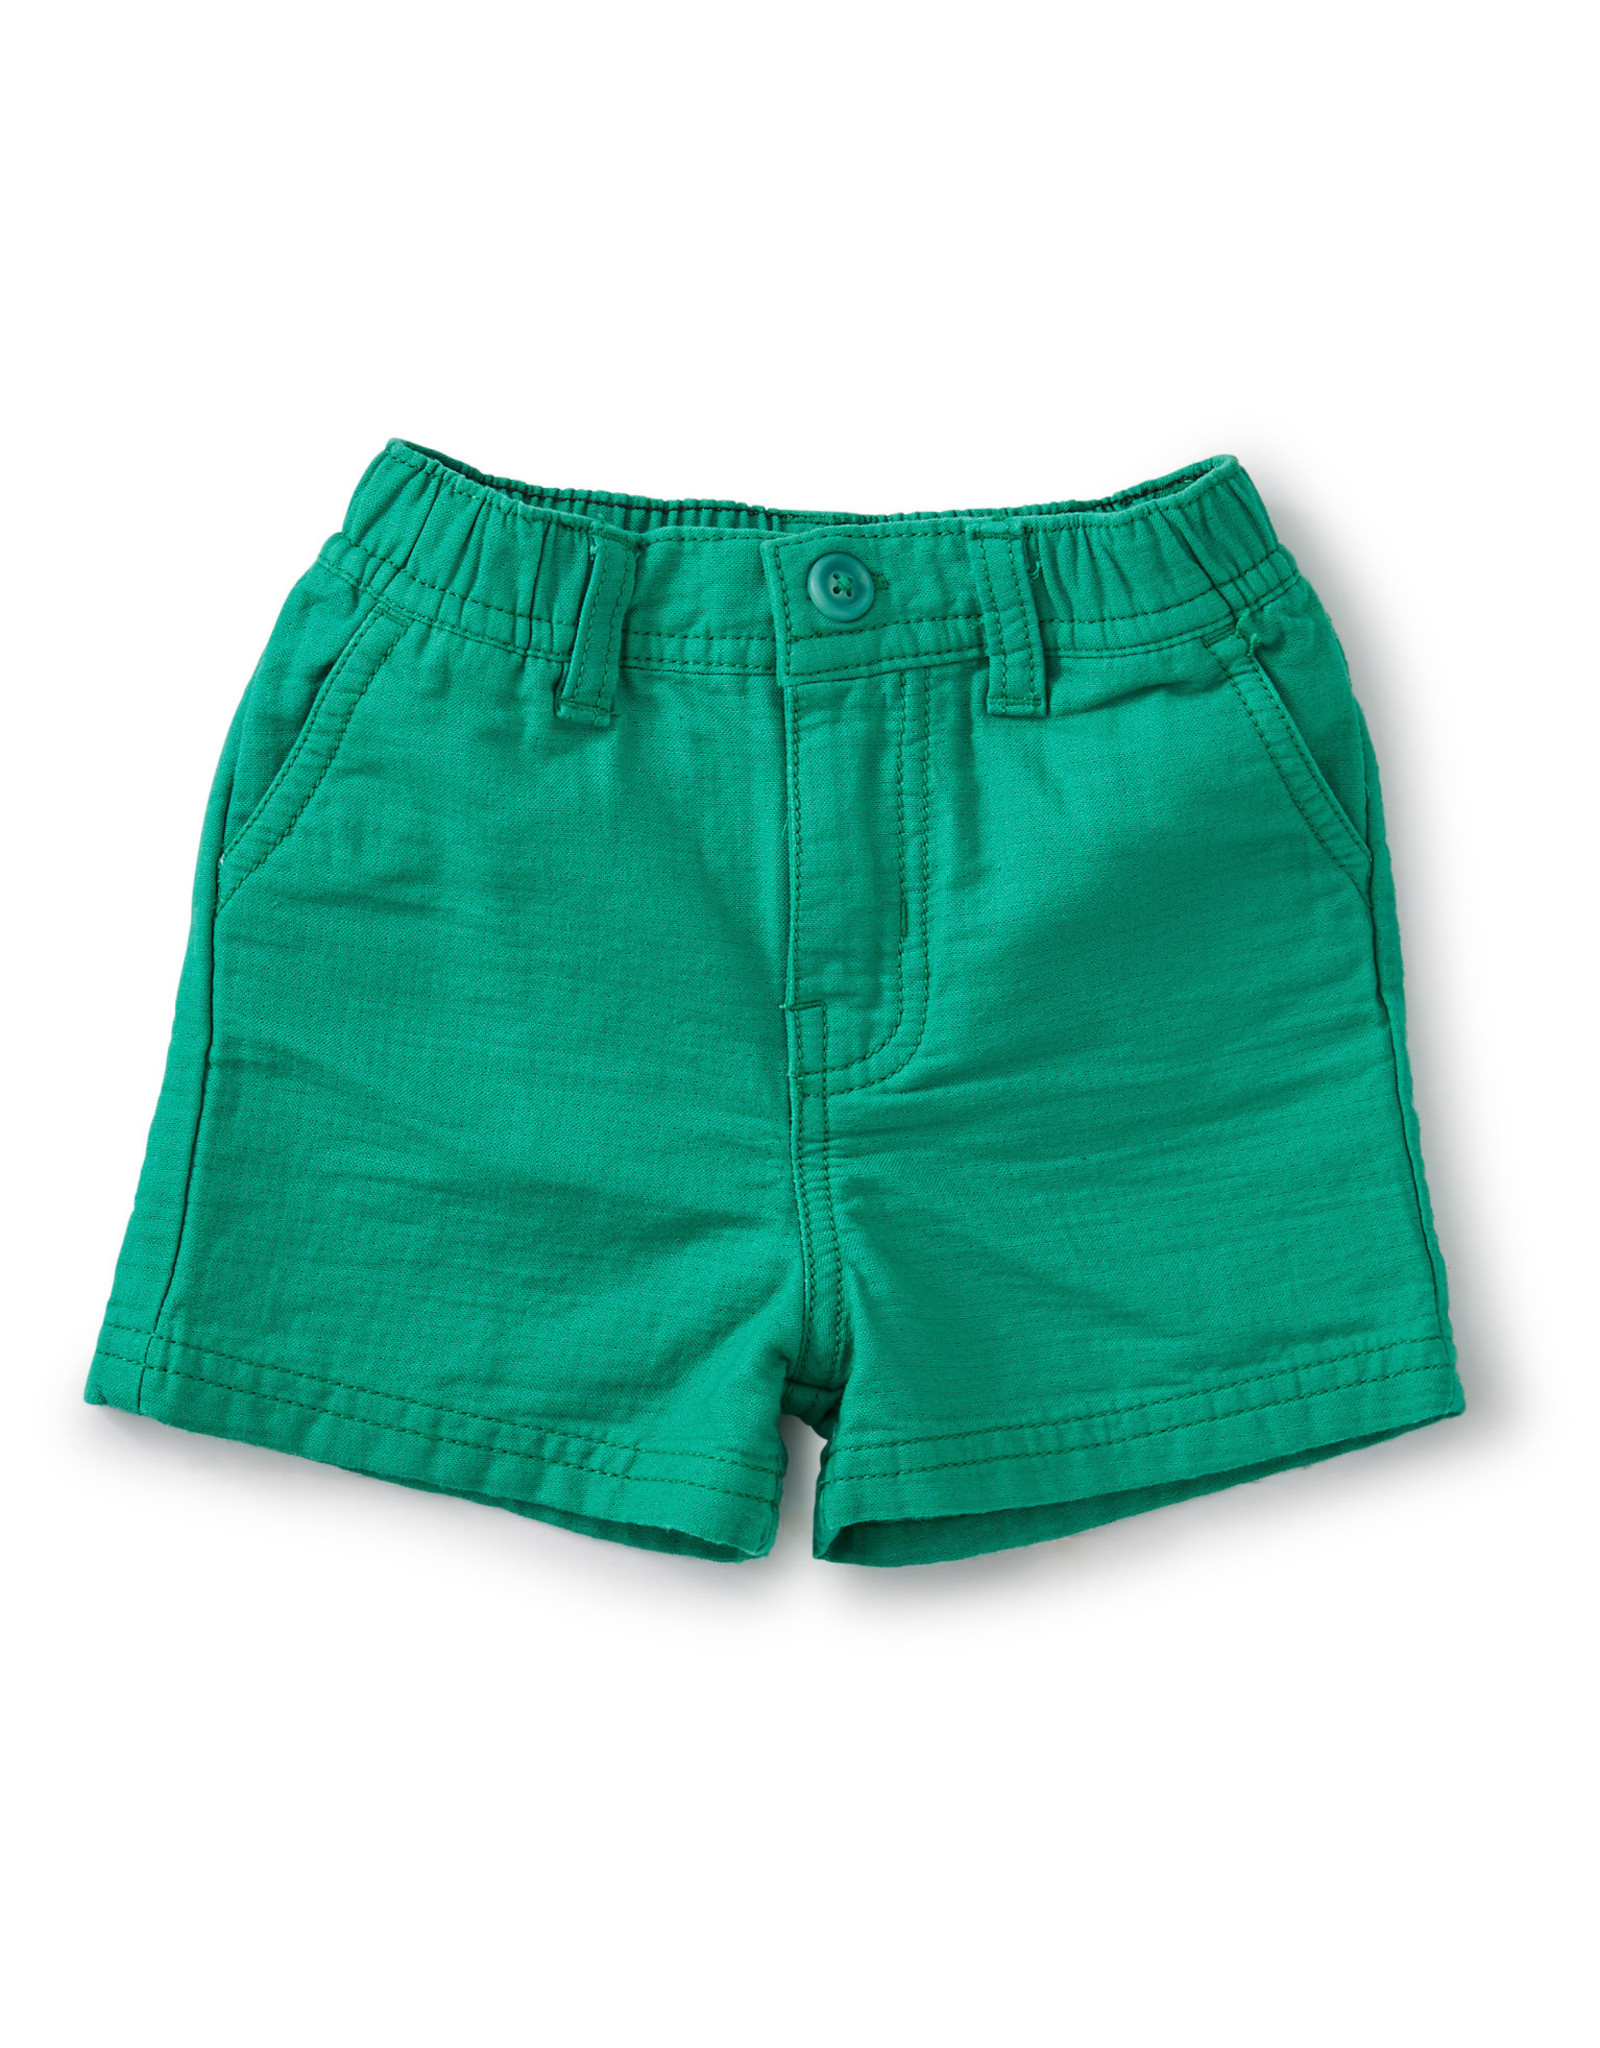 TRAVEL BABY SHORTS - VIRIDIS